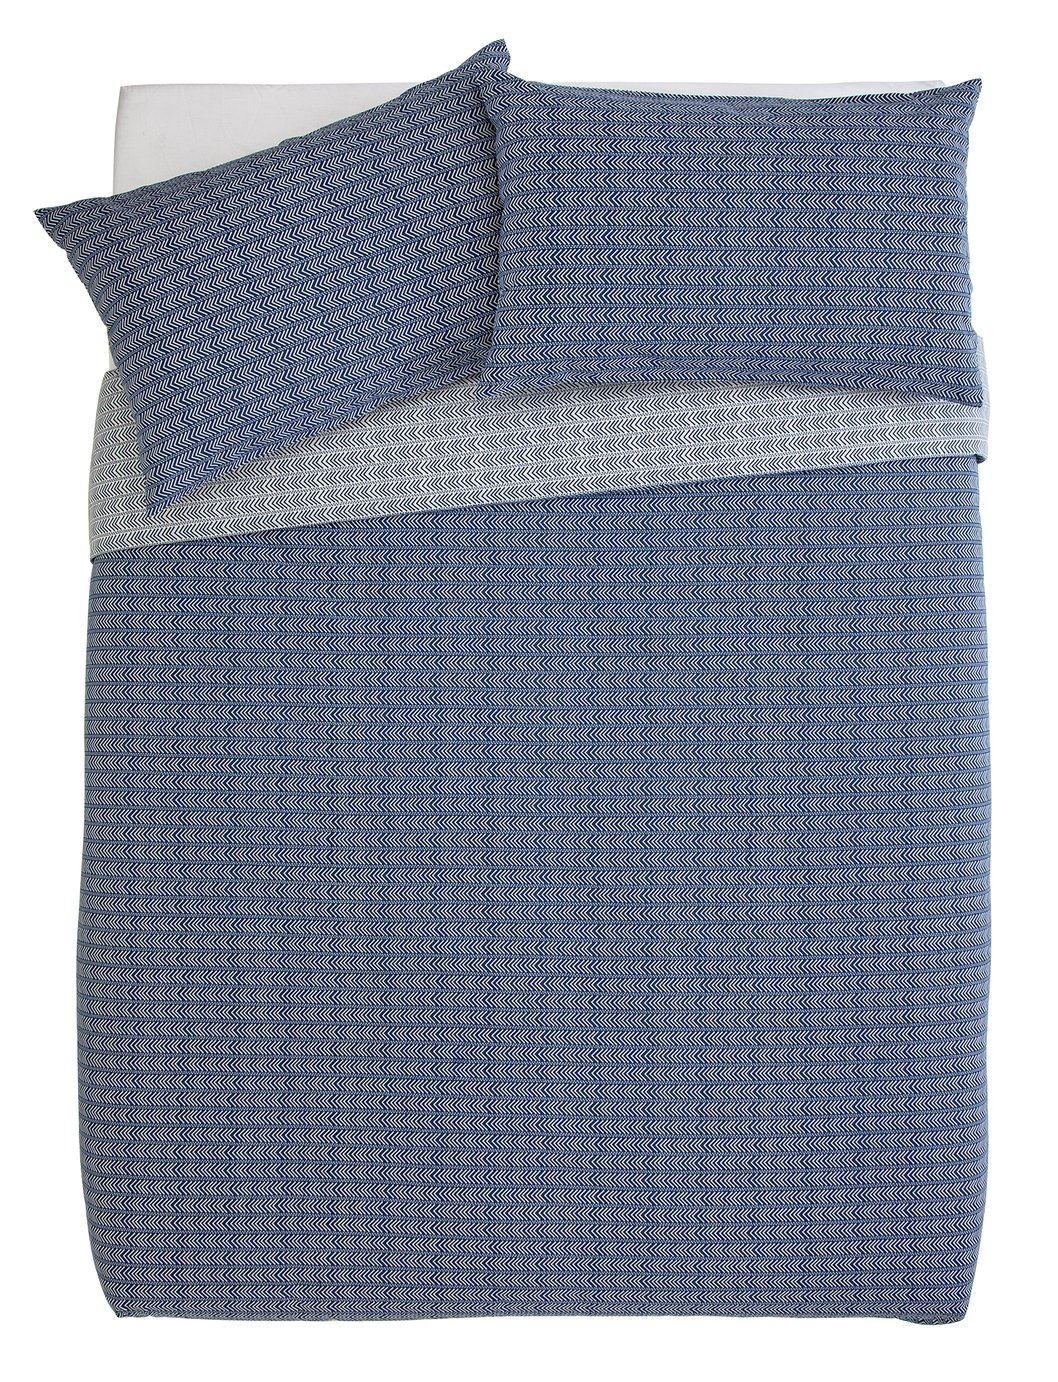 Argos Home Navy Arrow Bedding Set - Kingsize